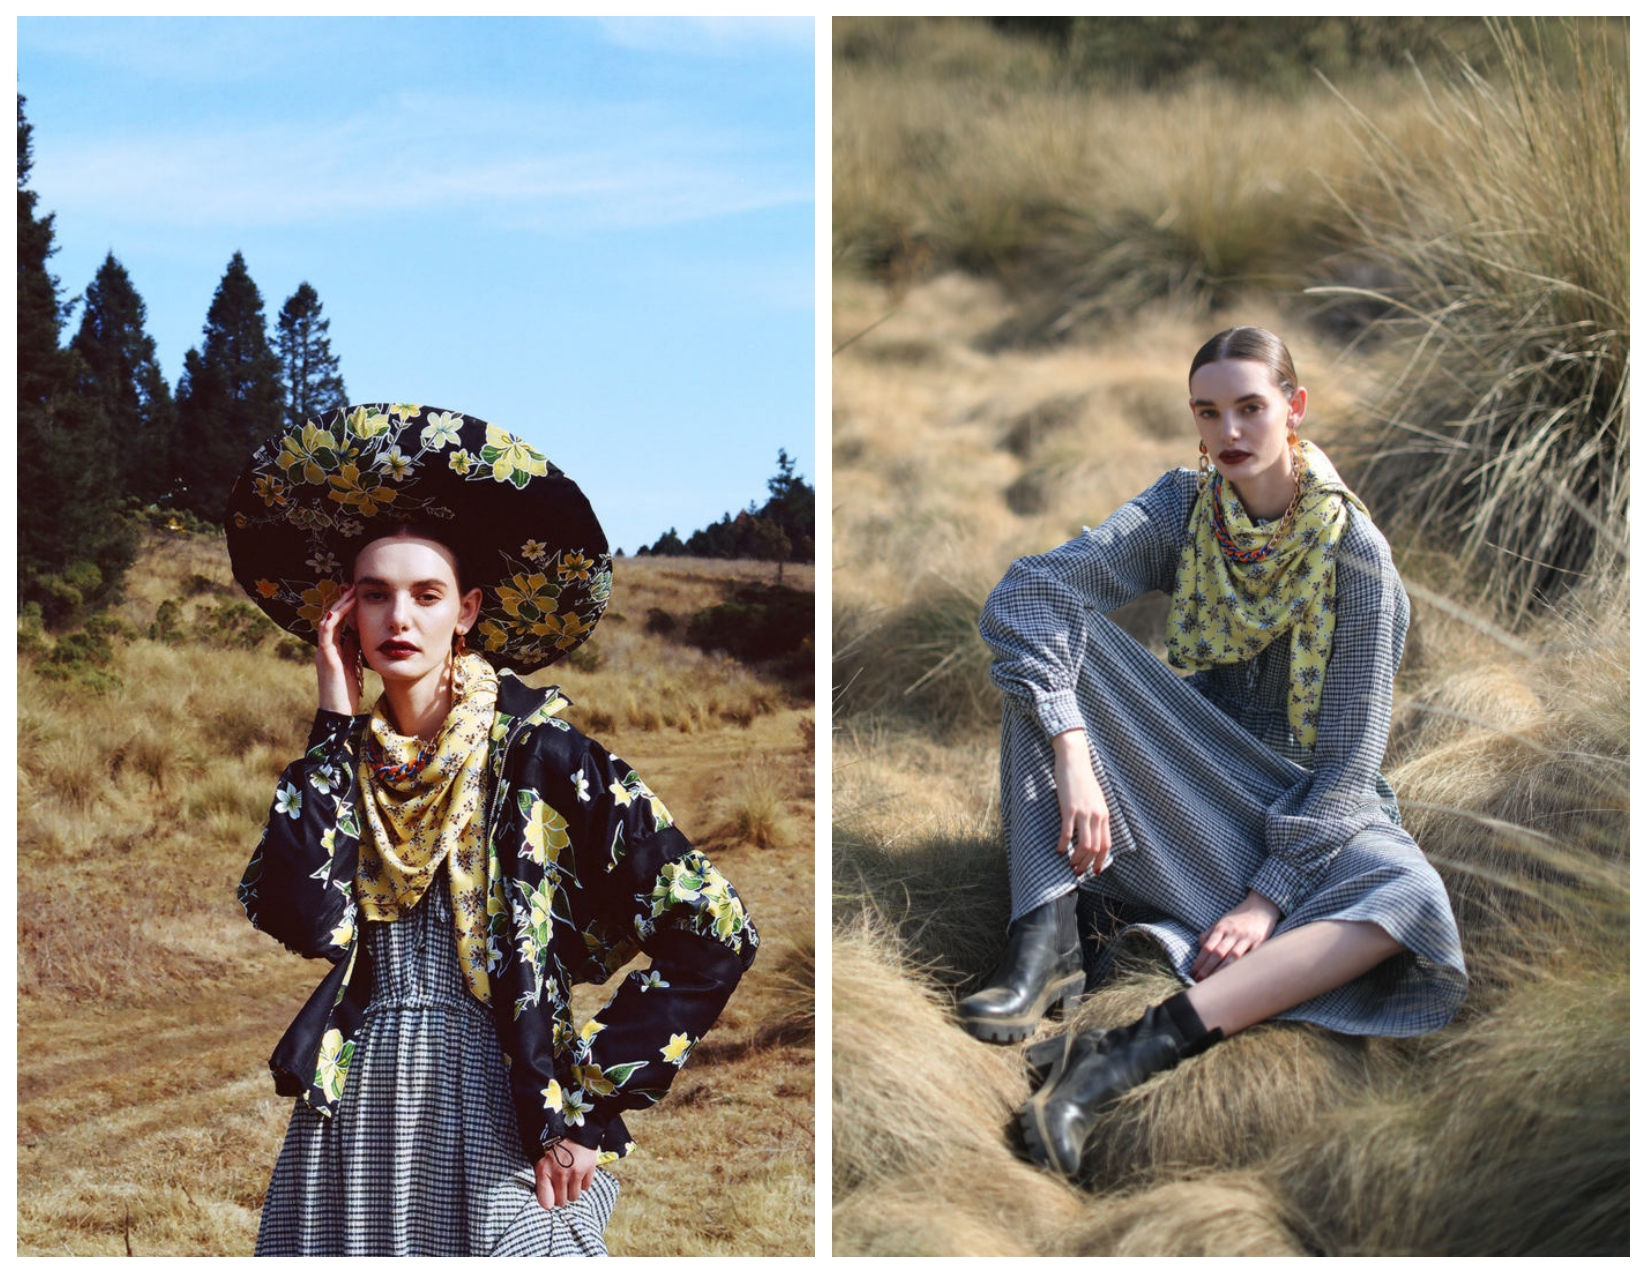 21AW look-book (1)_page-0005.jpg